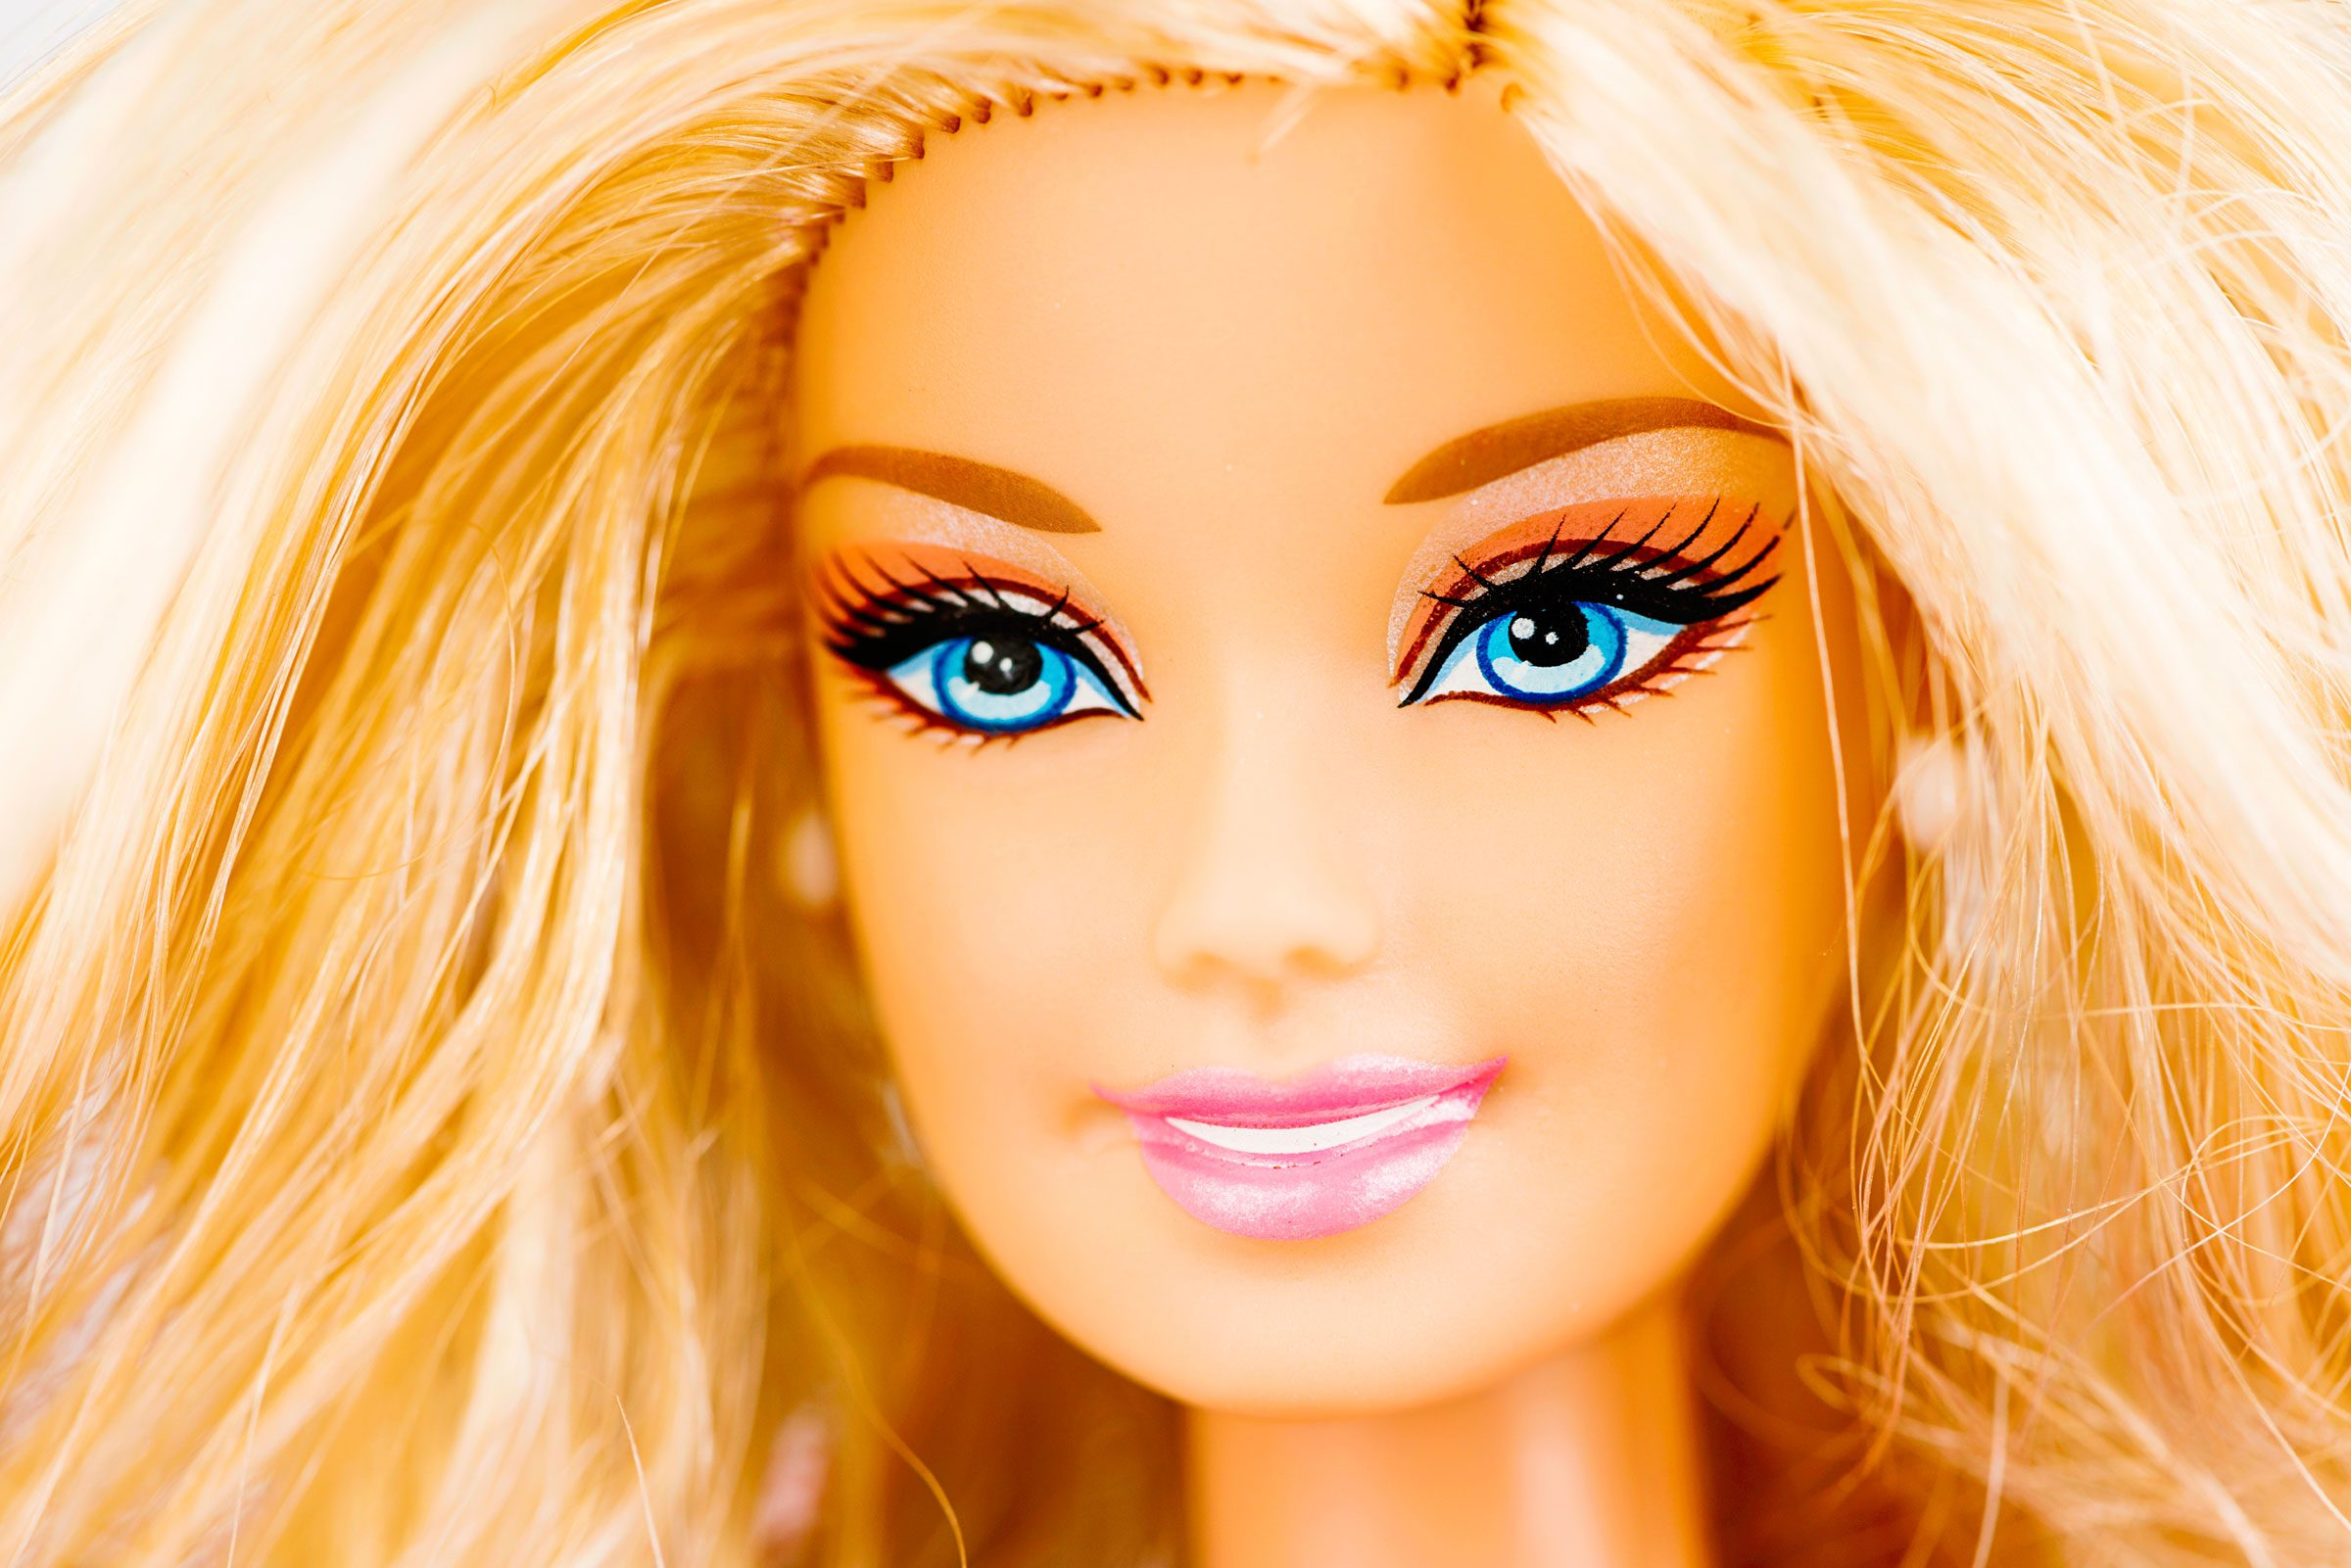 17 things you dont know about barbie readers digest barbie facts jeuxipadfo Choice Image